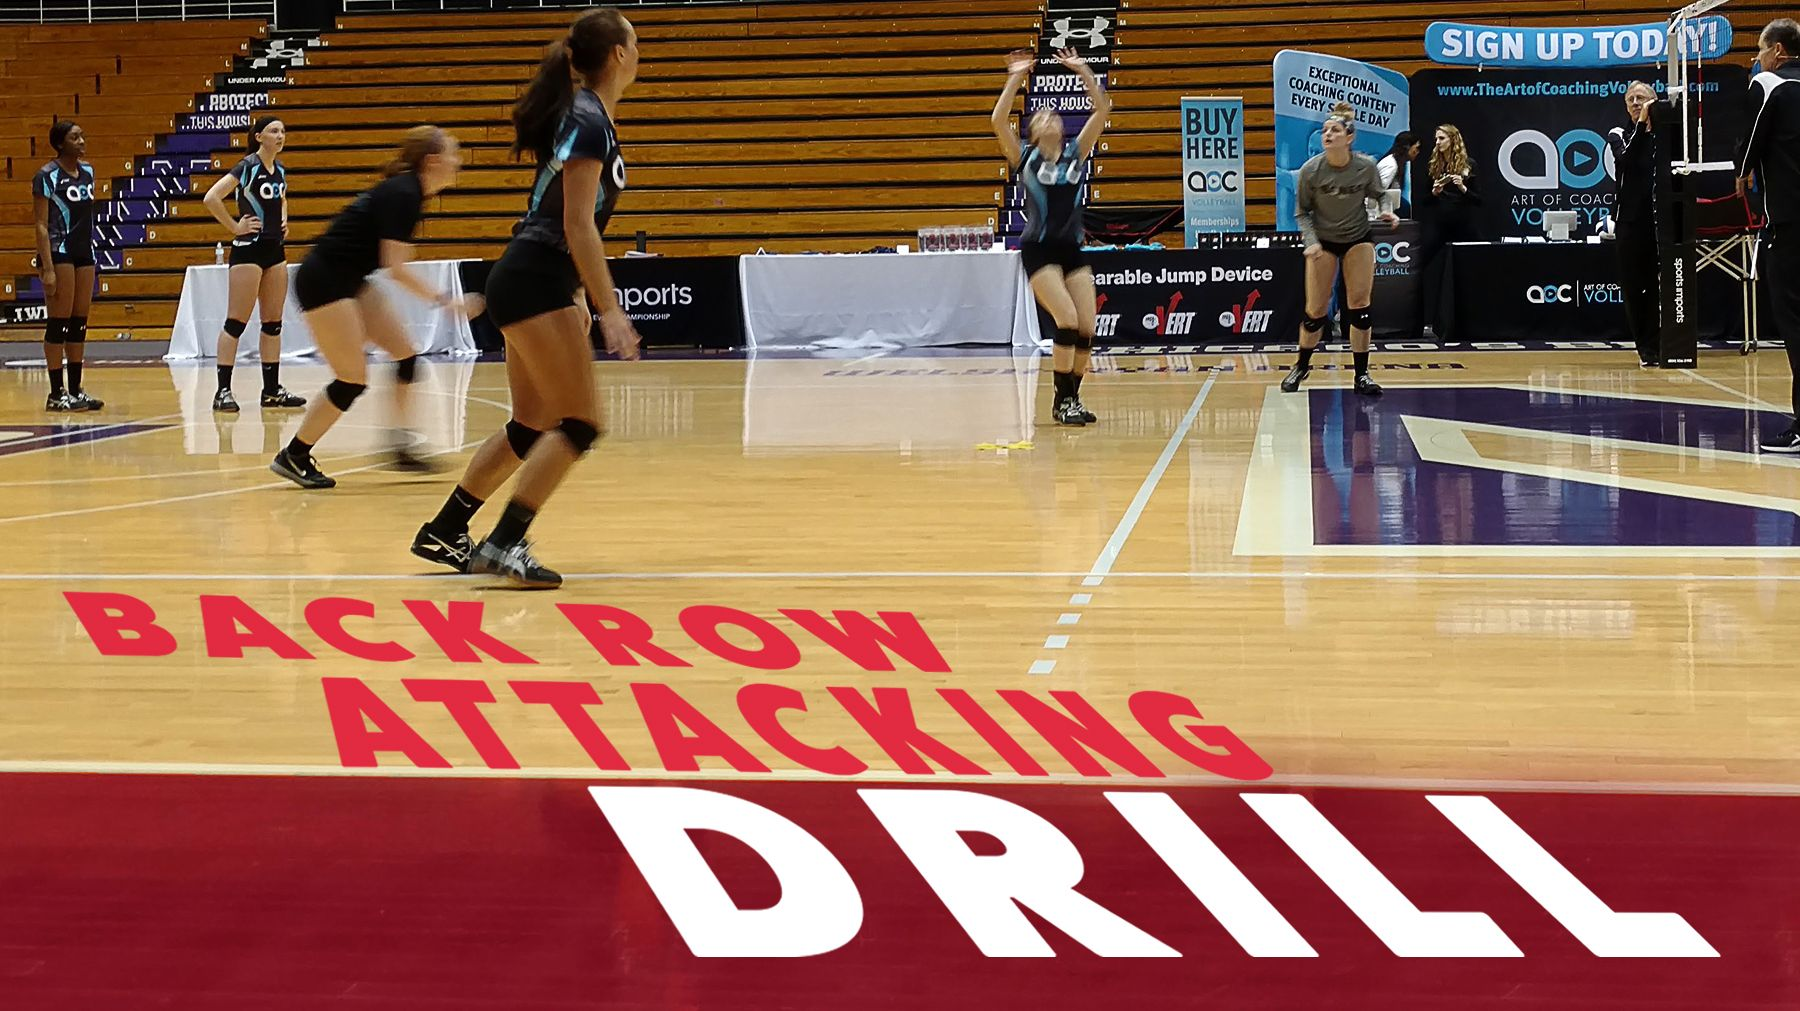 Reinforce Hitting Basics With Back Row Attack Drill The Art Of Coaching Volleyball Volleyball Skills Coaching Volleyball Volleyball Training